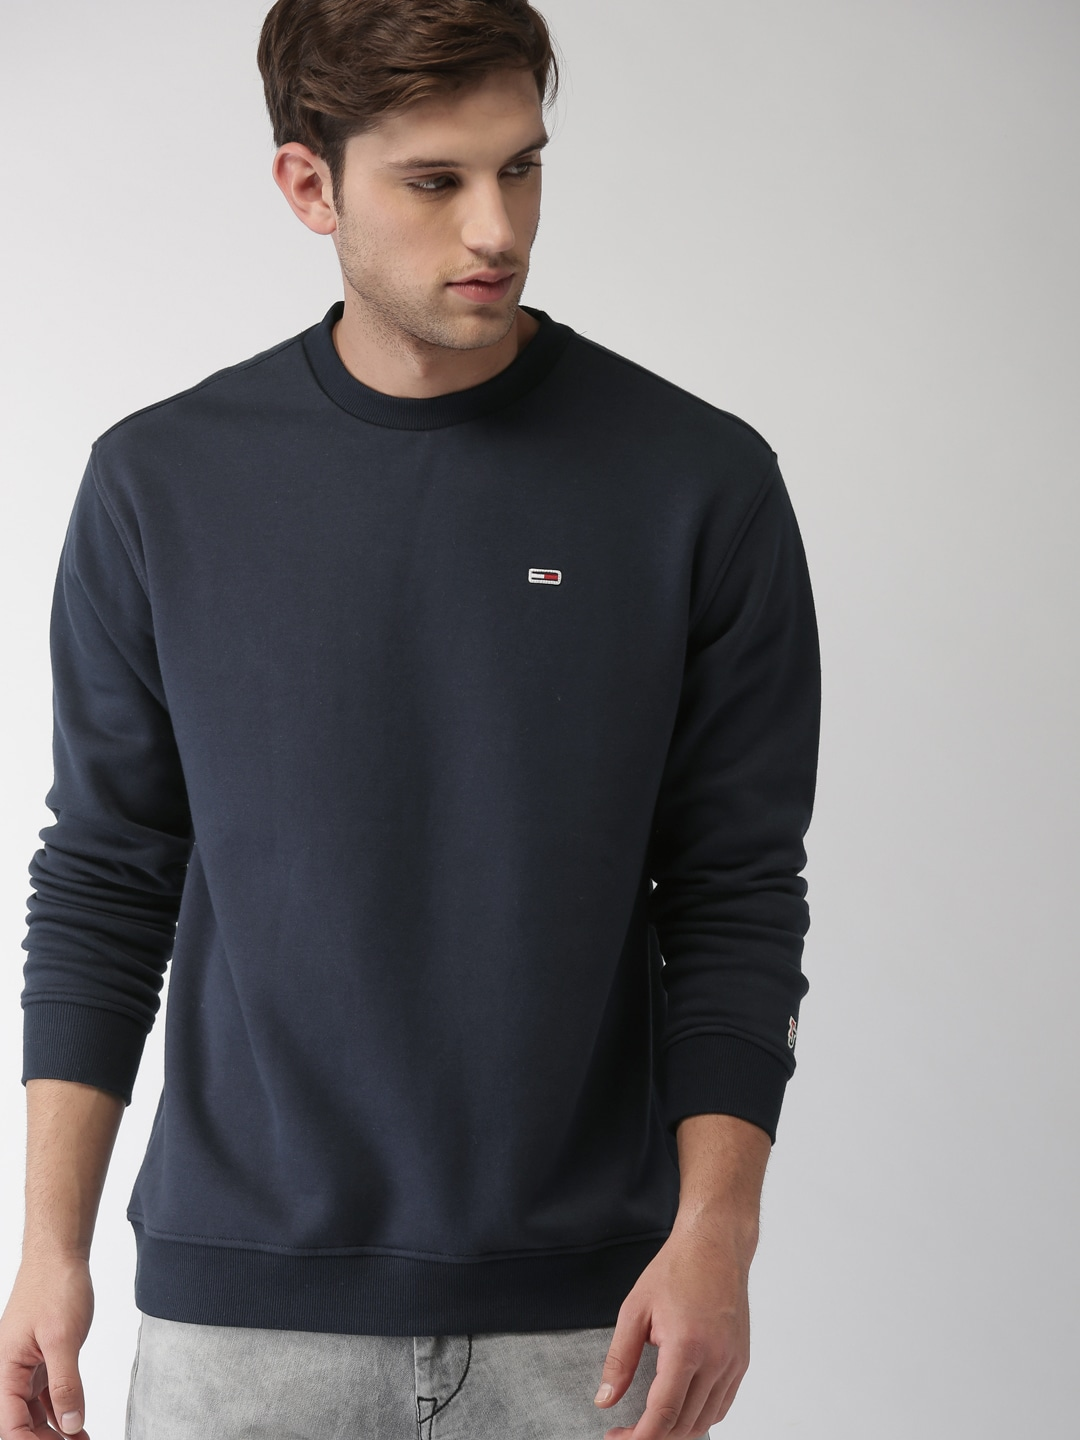 985fa7d5d7 Sweatshirts   Hoodies - Buy Sweatshirts   Hoodies for Men   Women Online -  Myntra